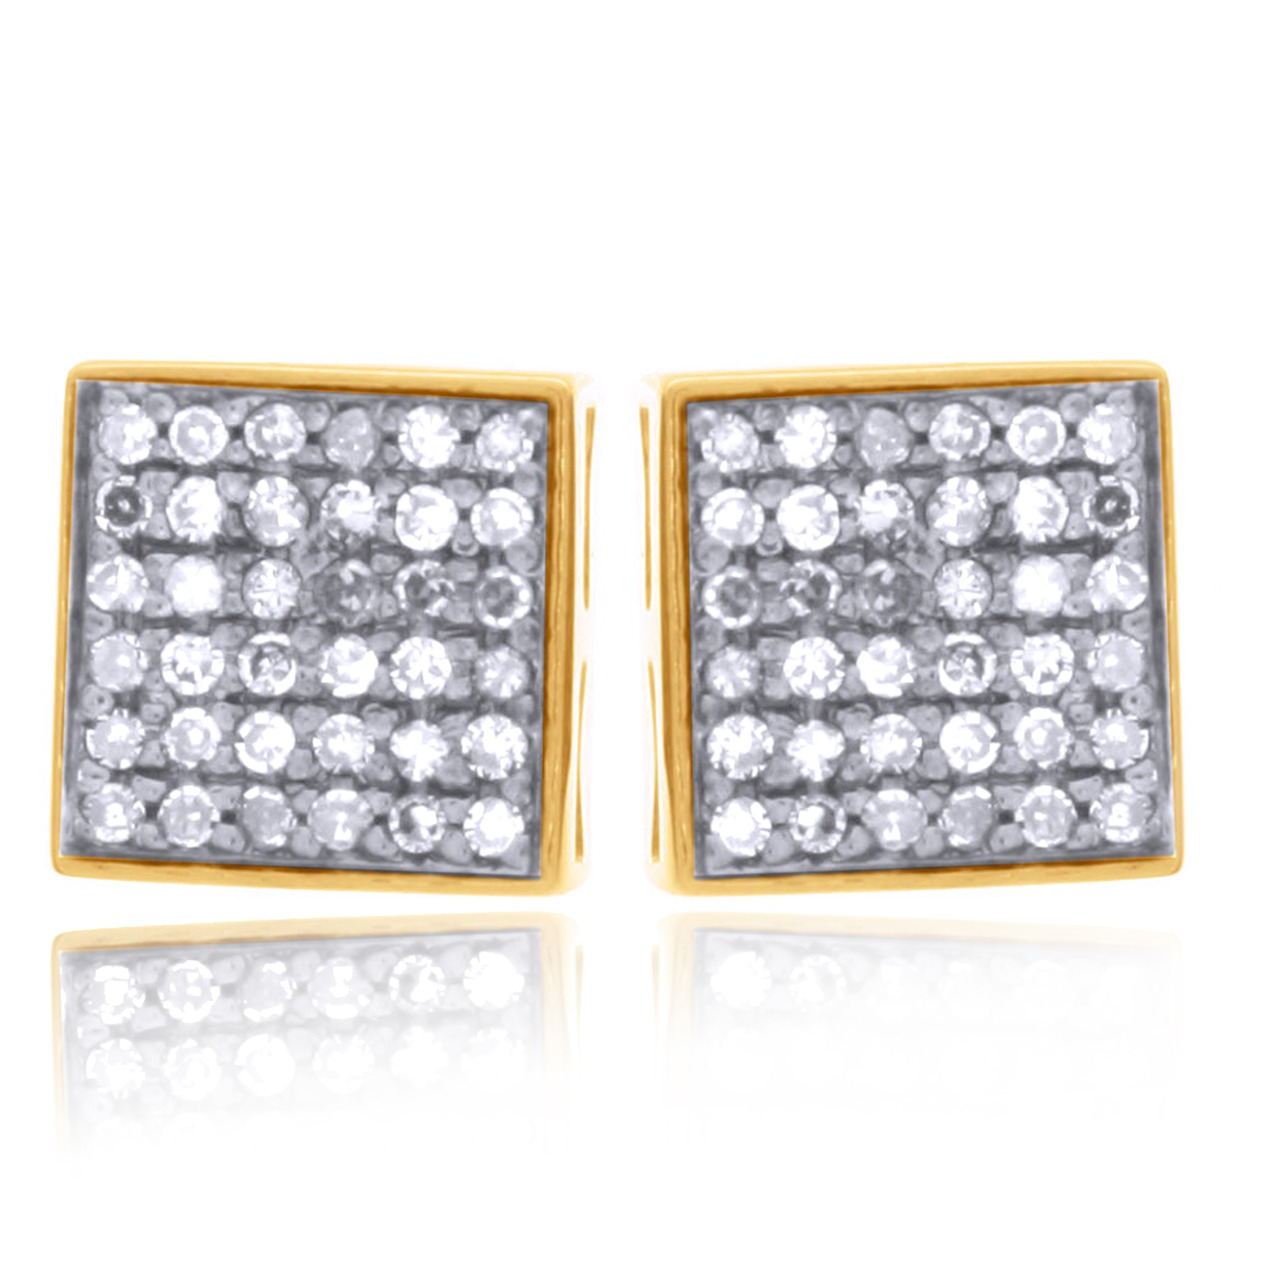 18K Yellow Gold Over Sterling Silver 0.55 ct Brown Diamond Stud Earrings (1)